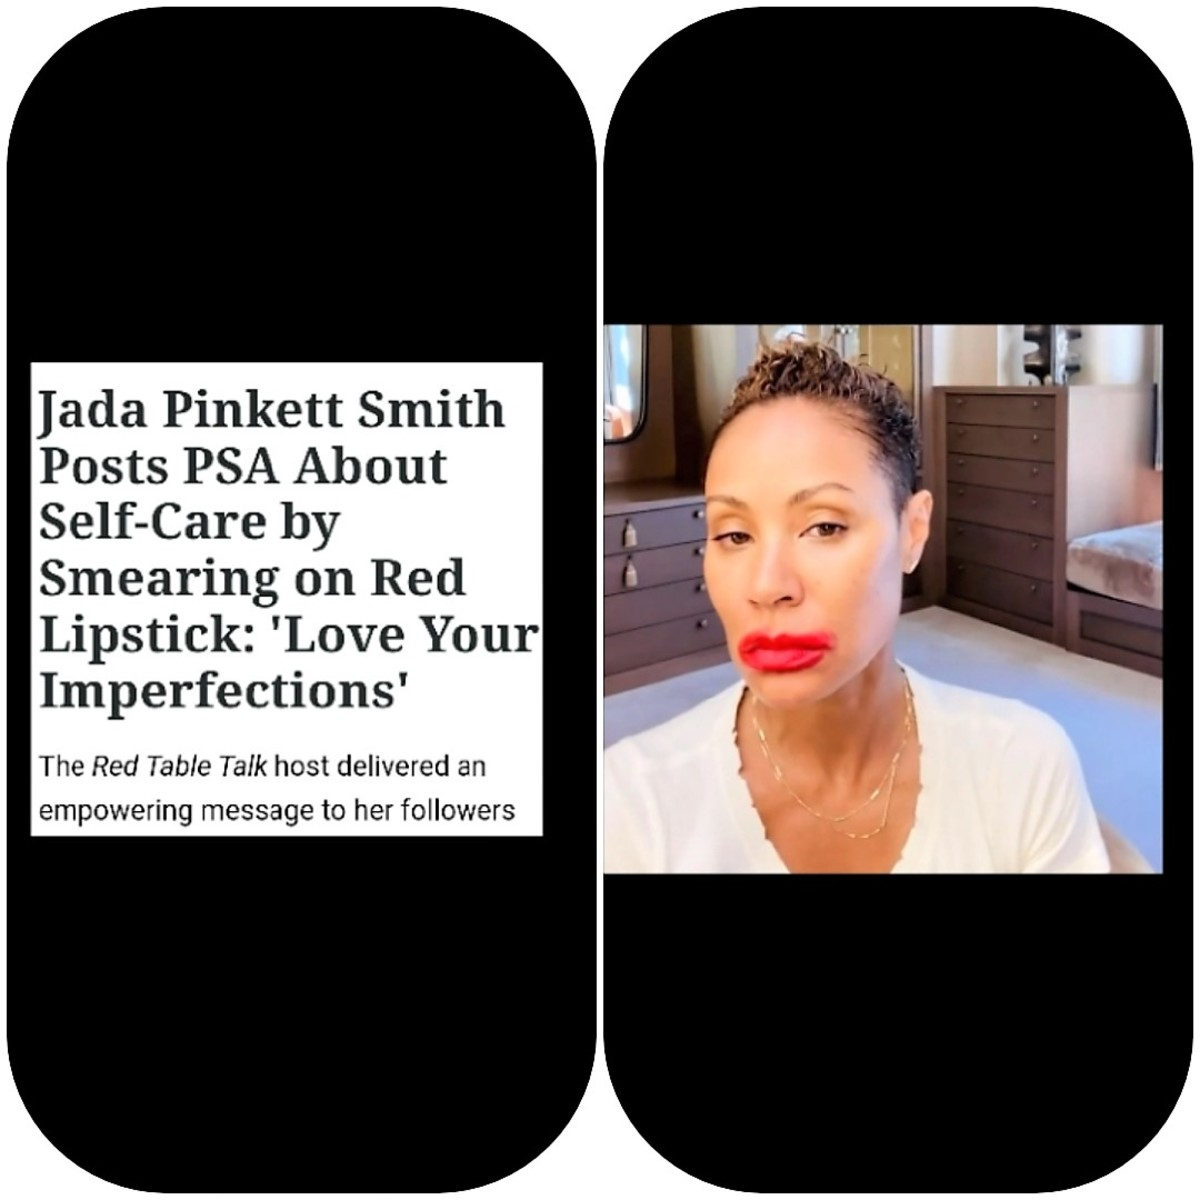 """May 18, 2020 Jada Pinkett Smith posted a powerful message to her fans. """"Love Your Imperfections"""""""